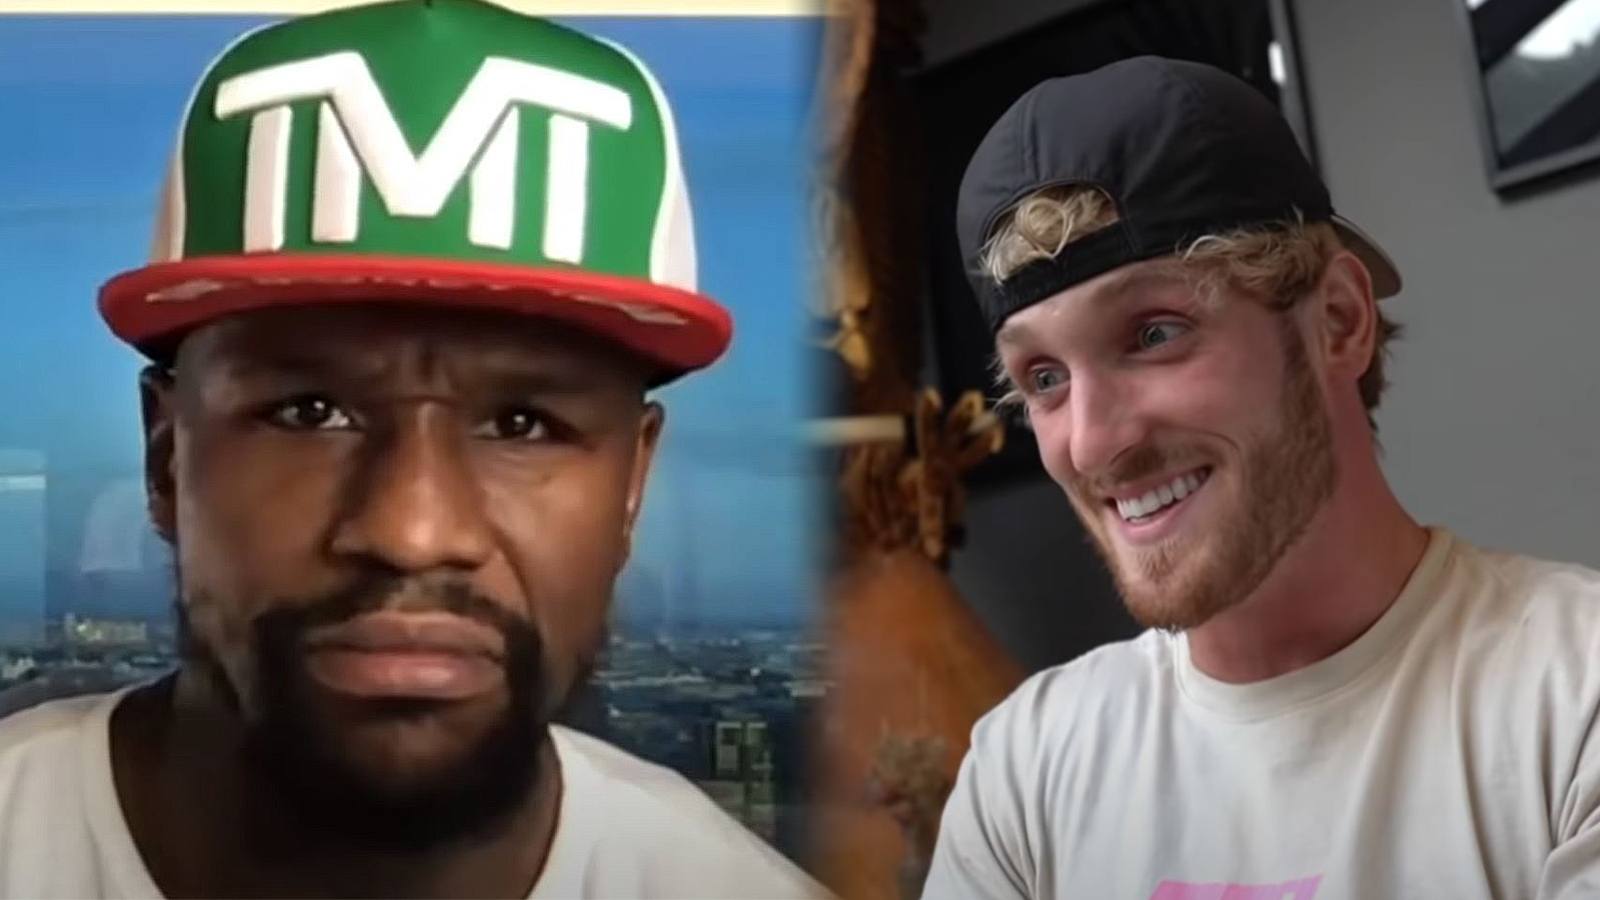 Logan Paul shares FaceTime call with Floyd Mayweather